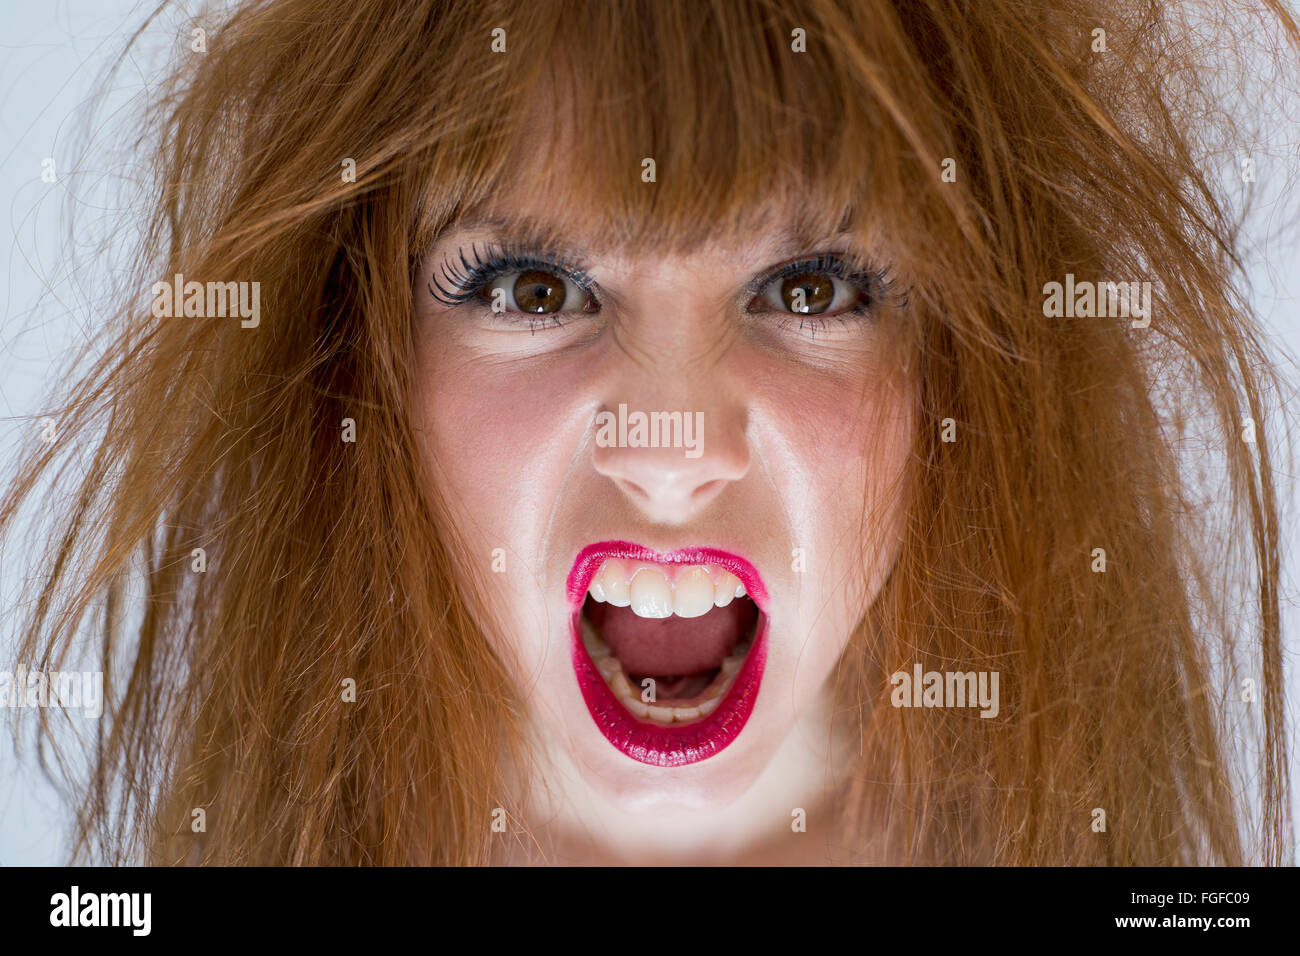 Portrait of a woman with messy disheveled hair with an expression of anger - Stock Image